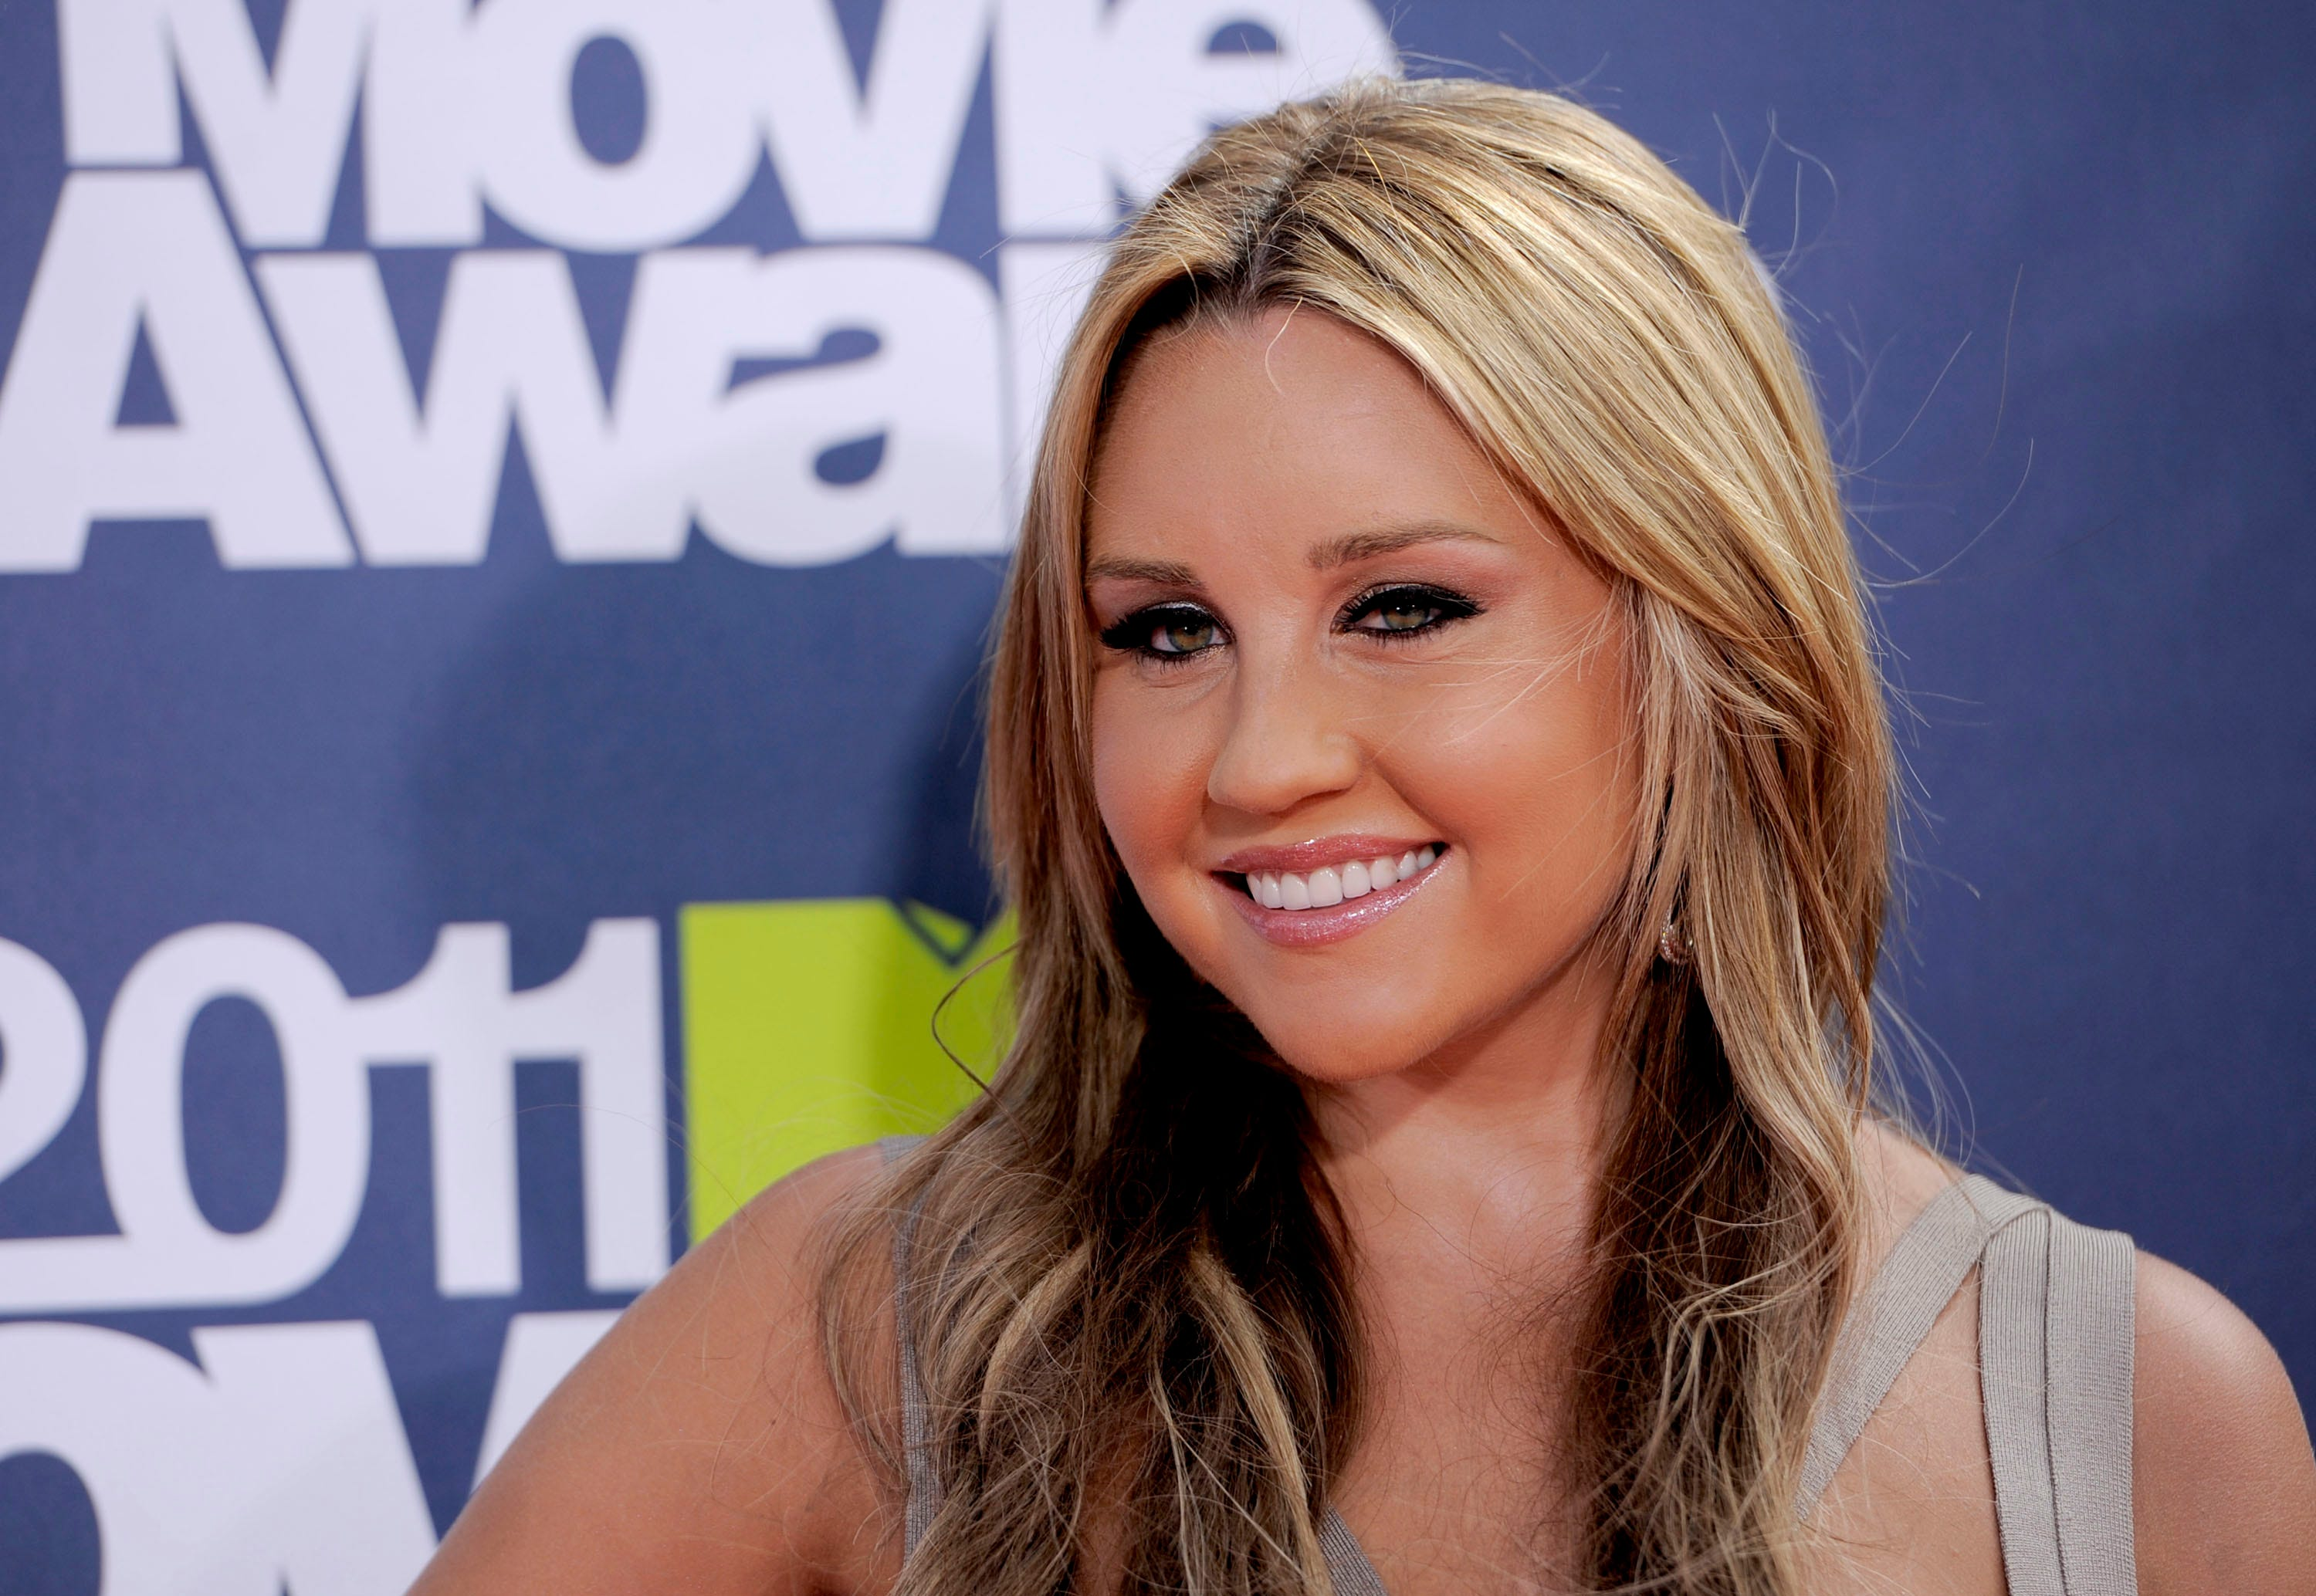 Amanda Bynes On Drugs Using Adderall For Weight Loss Getting Sober